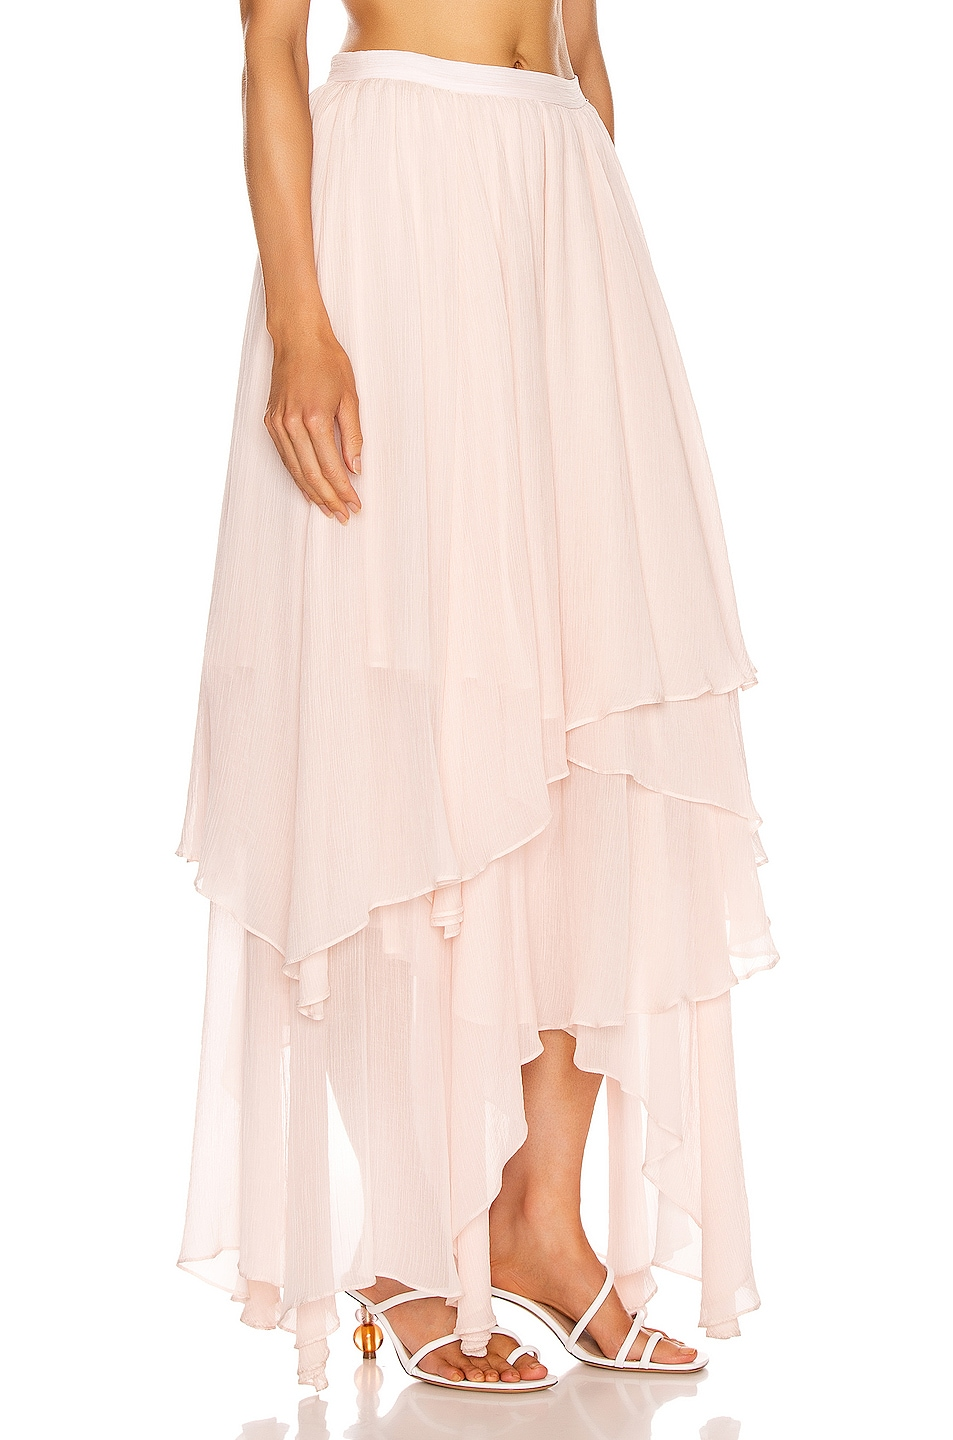 Image 2 of Mara Hoffman Carlotta Skirt in Blush